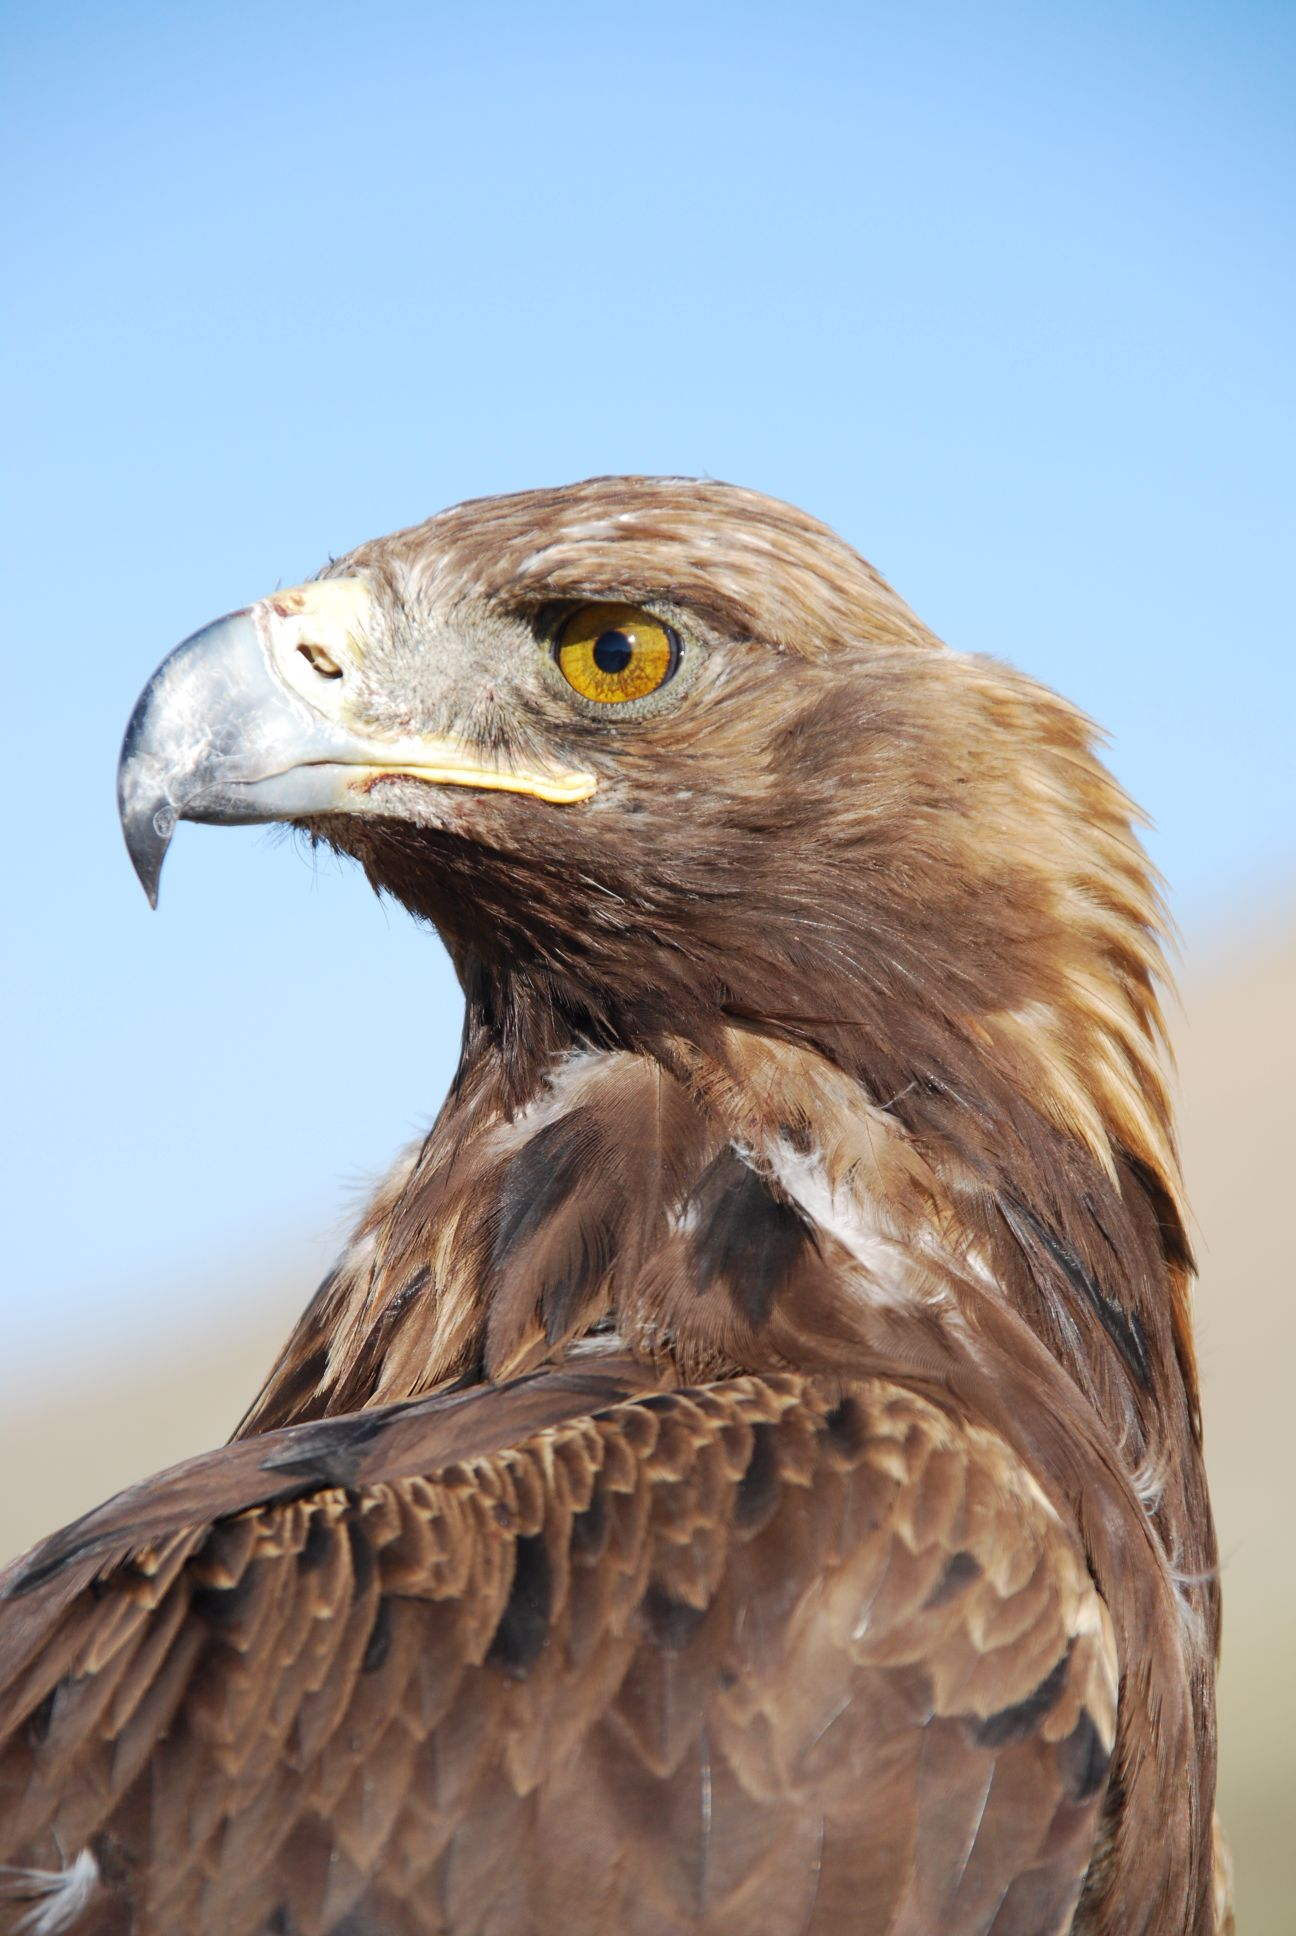 golden eagle - absolutely stunning